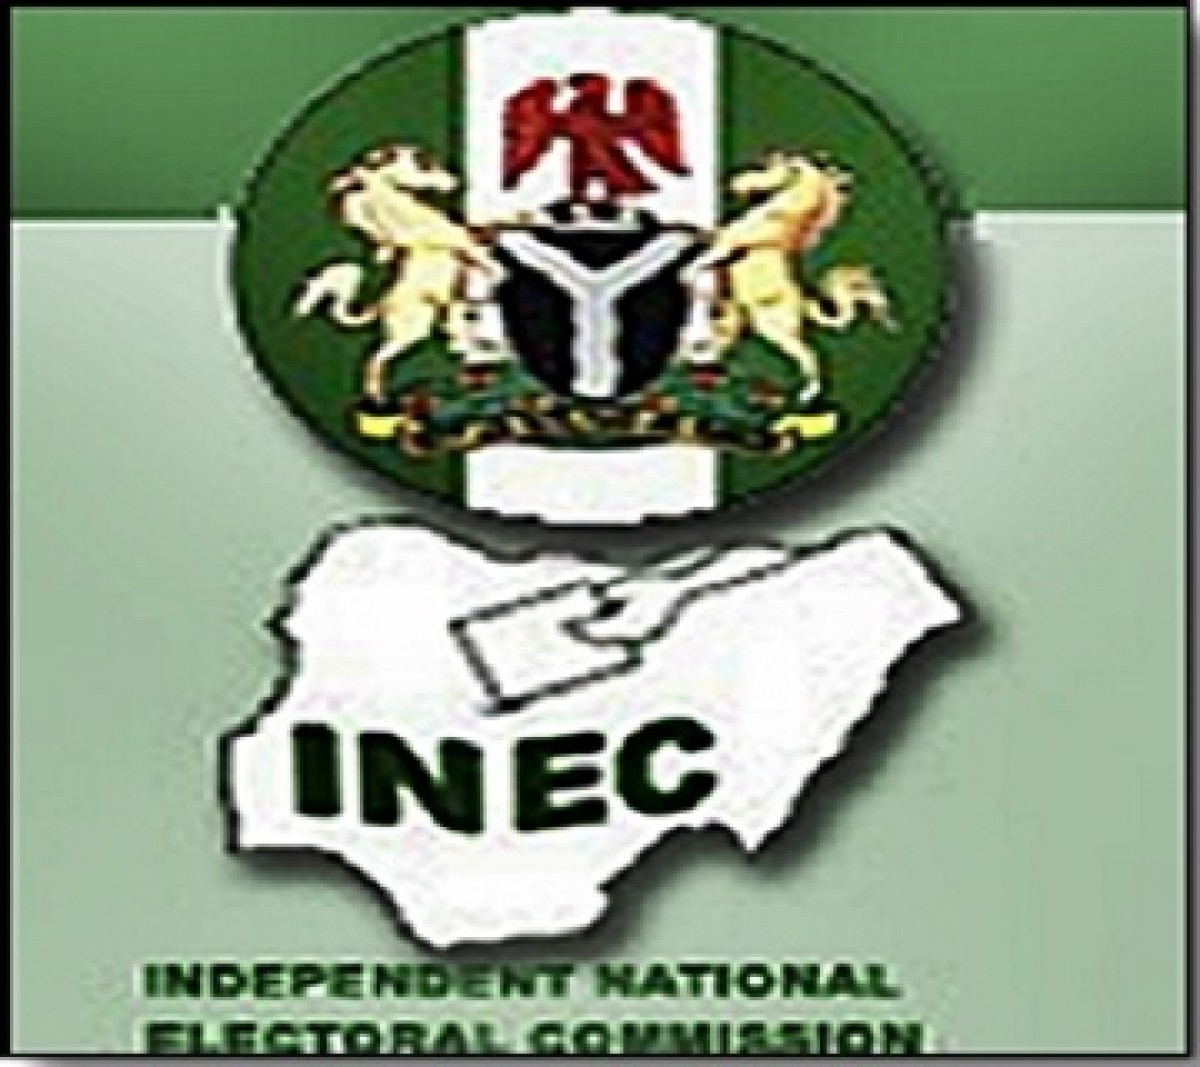 Citing votes cancellation, INEC declares Osun gov poll inconclusive